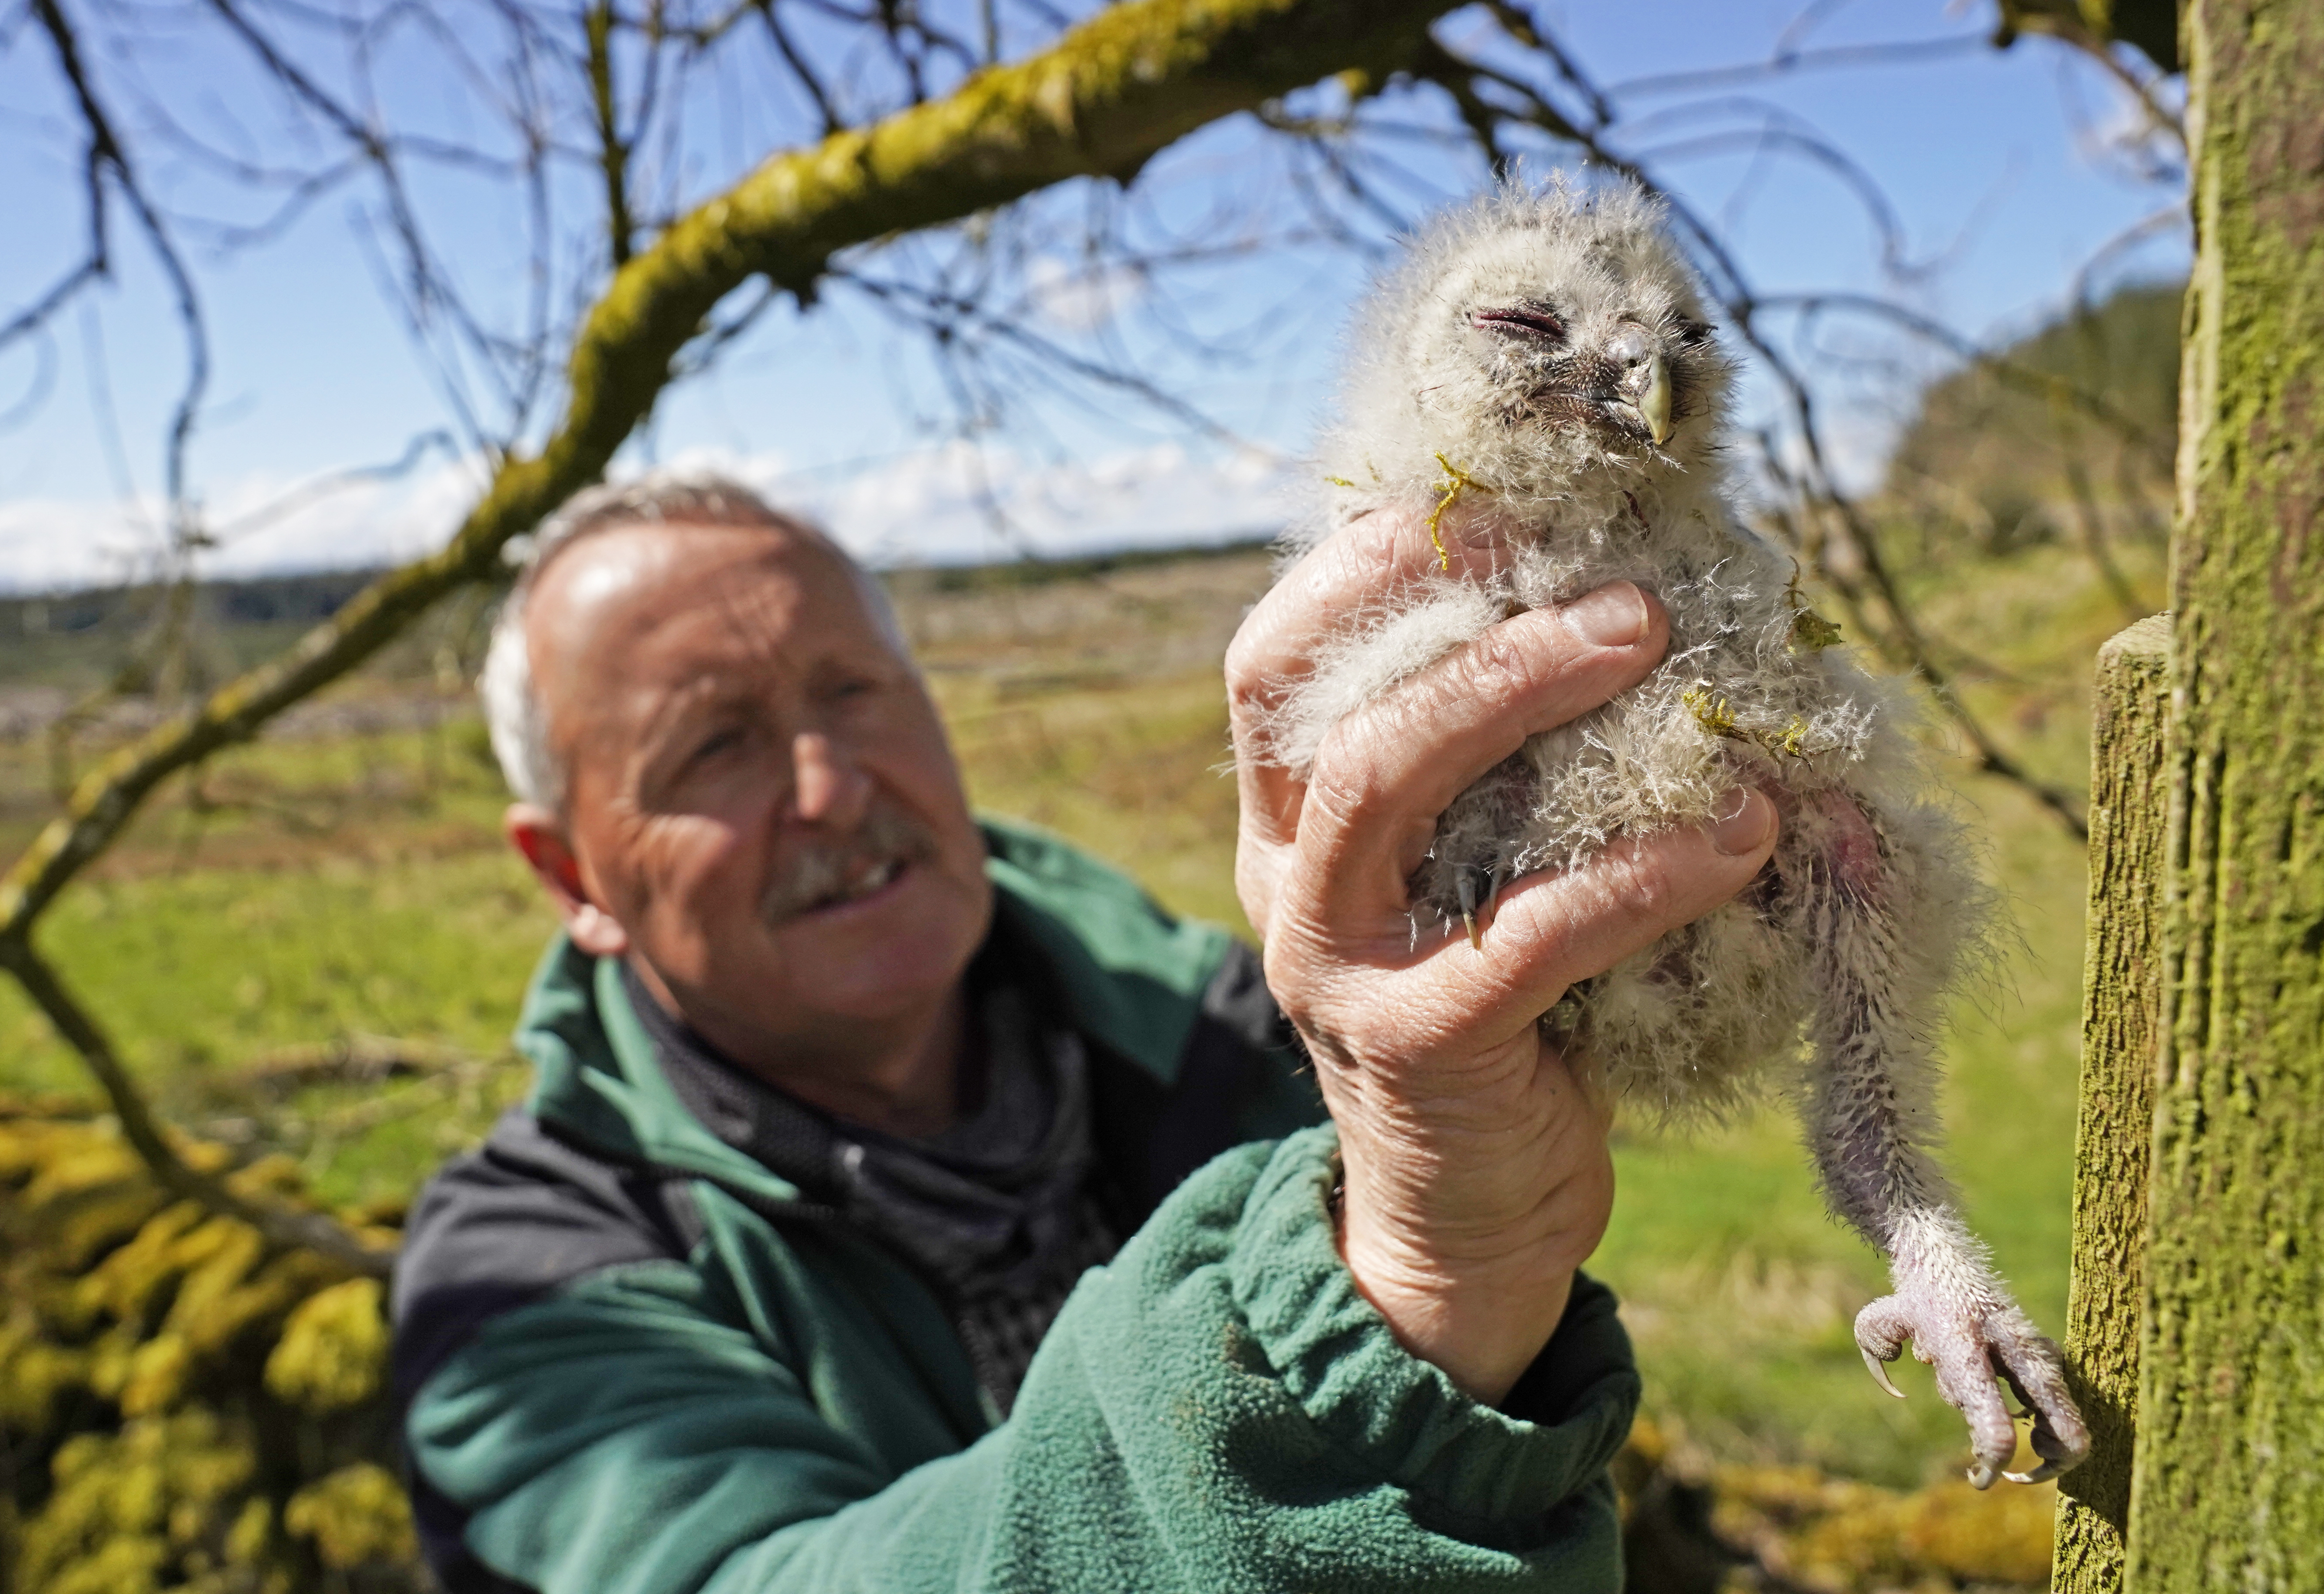 <p>Martin Davison, ornithologist for Forestry England, rings a baby tawny owl chick in Kielder Forest, Northumberland, where wildlife experts are continuing to work on the UK's longest running study of the birds. Picture date: Wednesday May 19, 2021.</p>